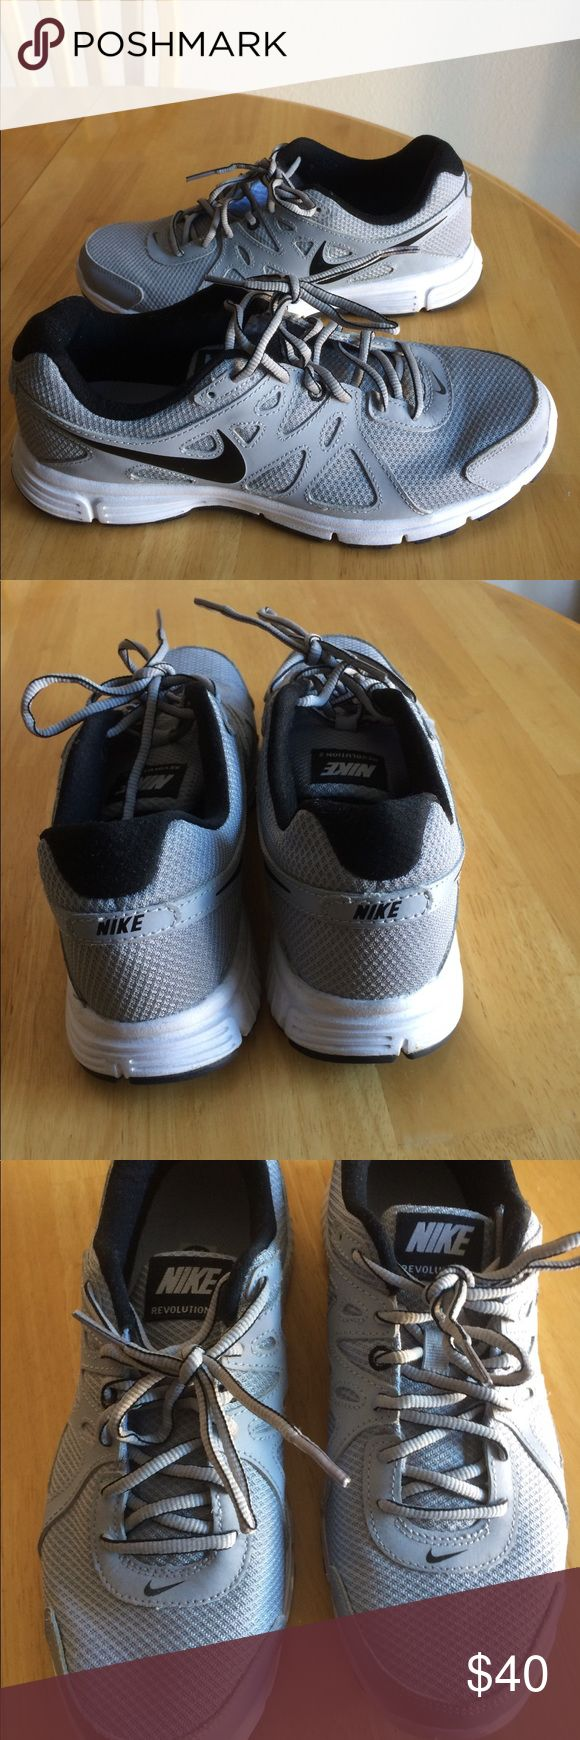 Men's Nike Revolution 2 Light Gray and Black Nike Revolution 2 Sneakers. Worn twice Nike Shoes Athletic Shoes